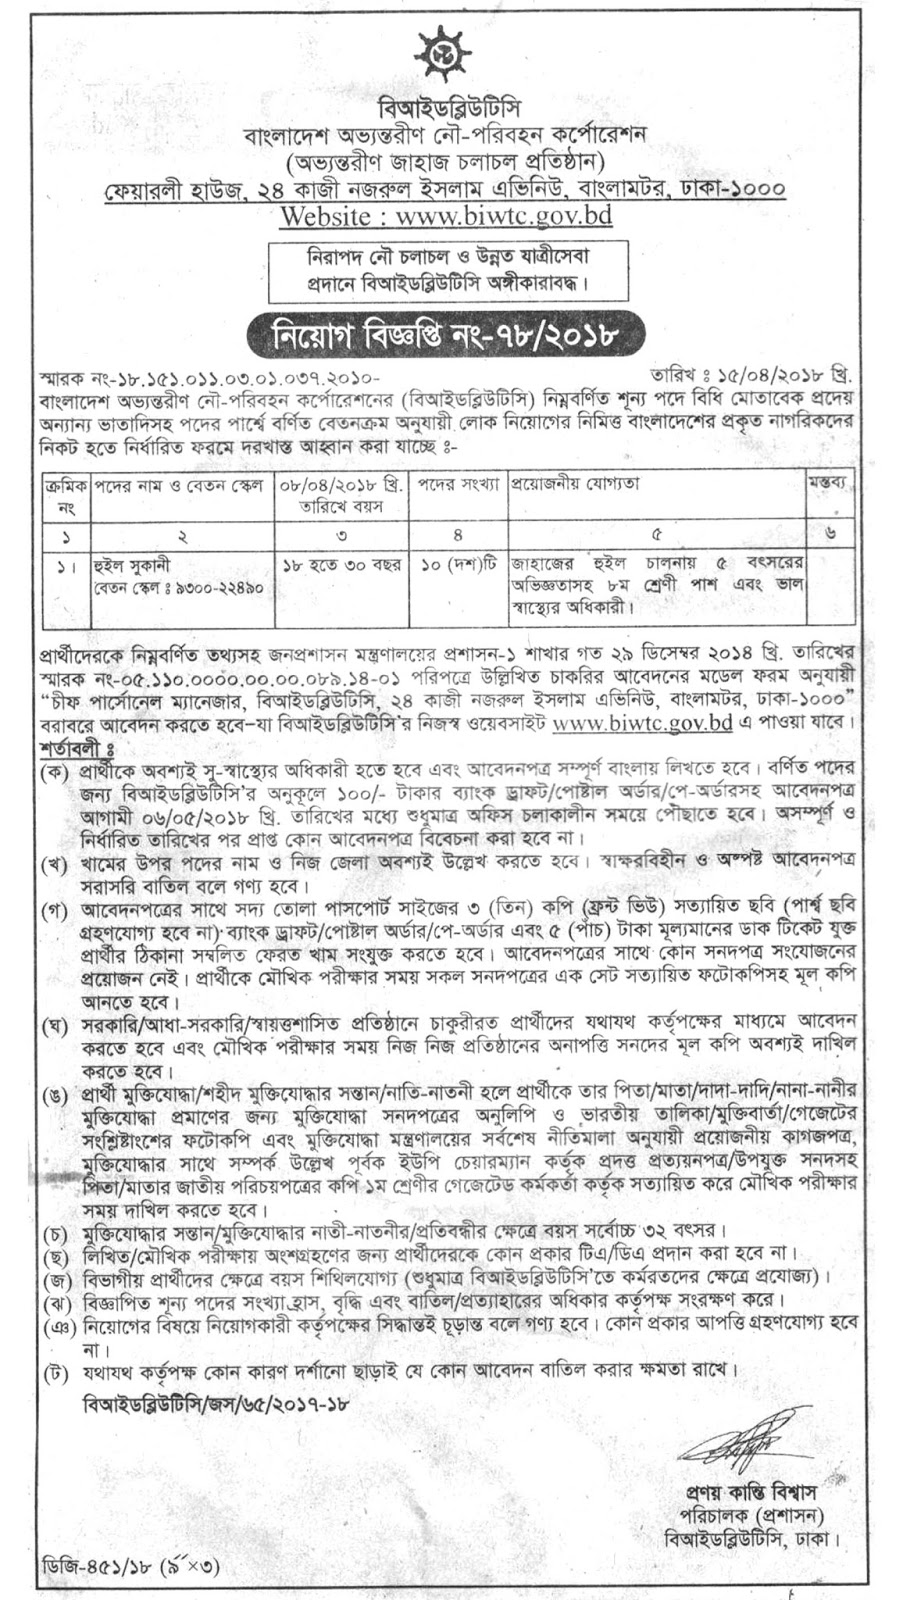 Bangladesh Inland Water Transport Corporation (BIWTC) Job Circular 2018